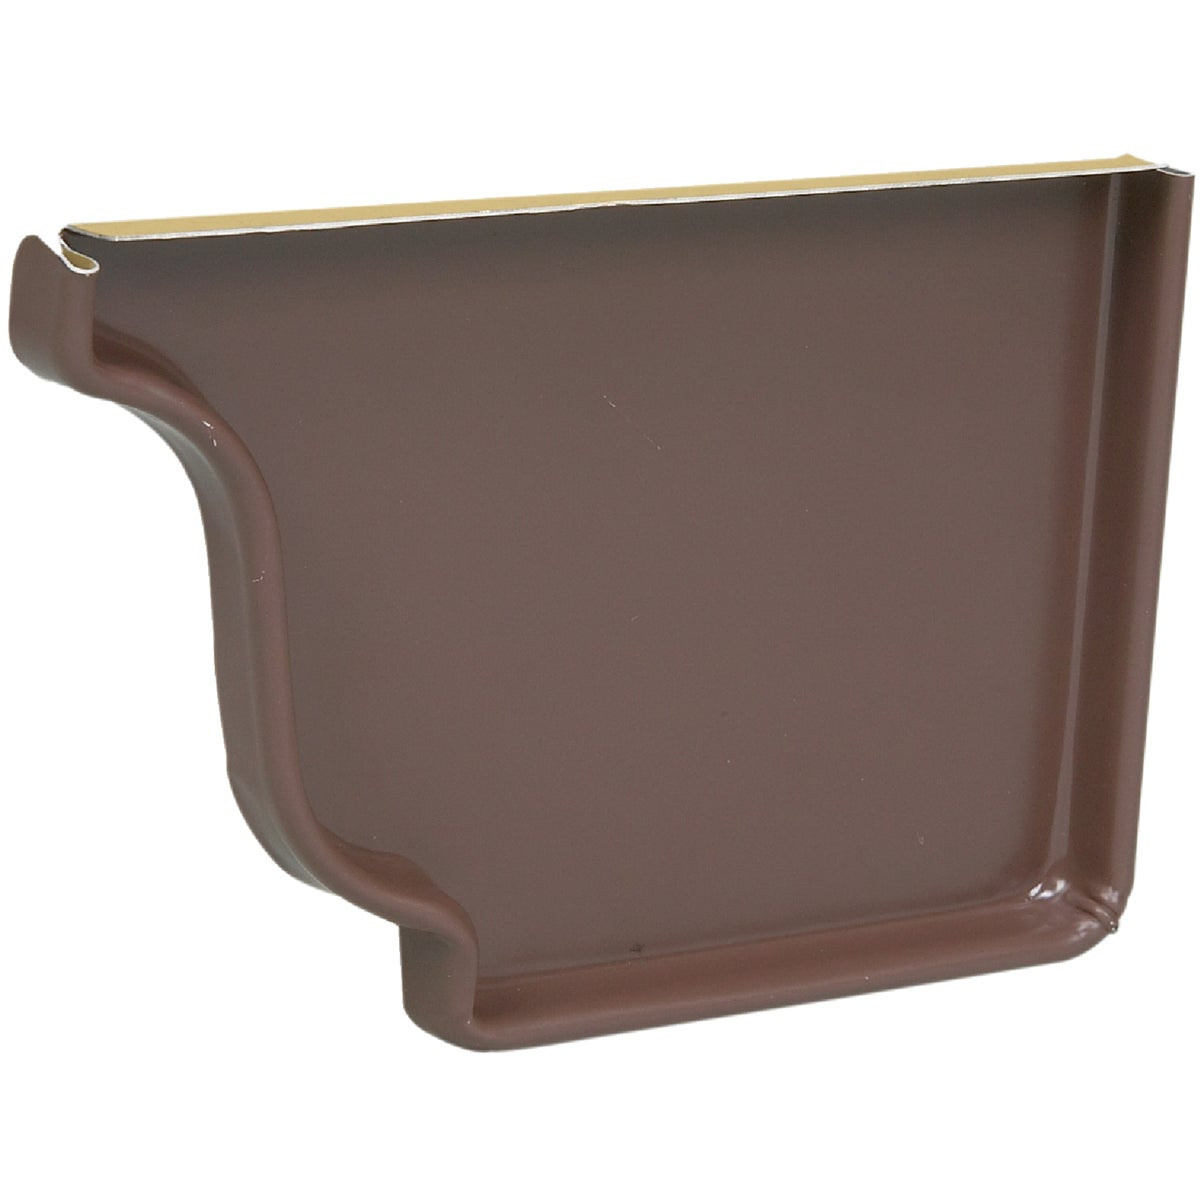 BROWN RIGHT END CAP - 2520619 by Amerimax Home Prod